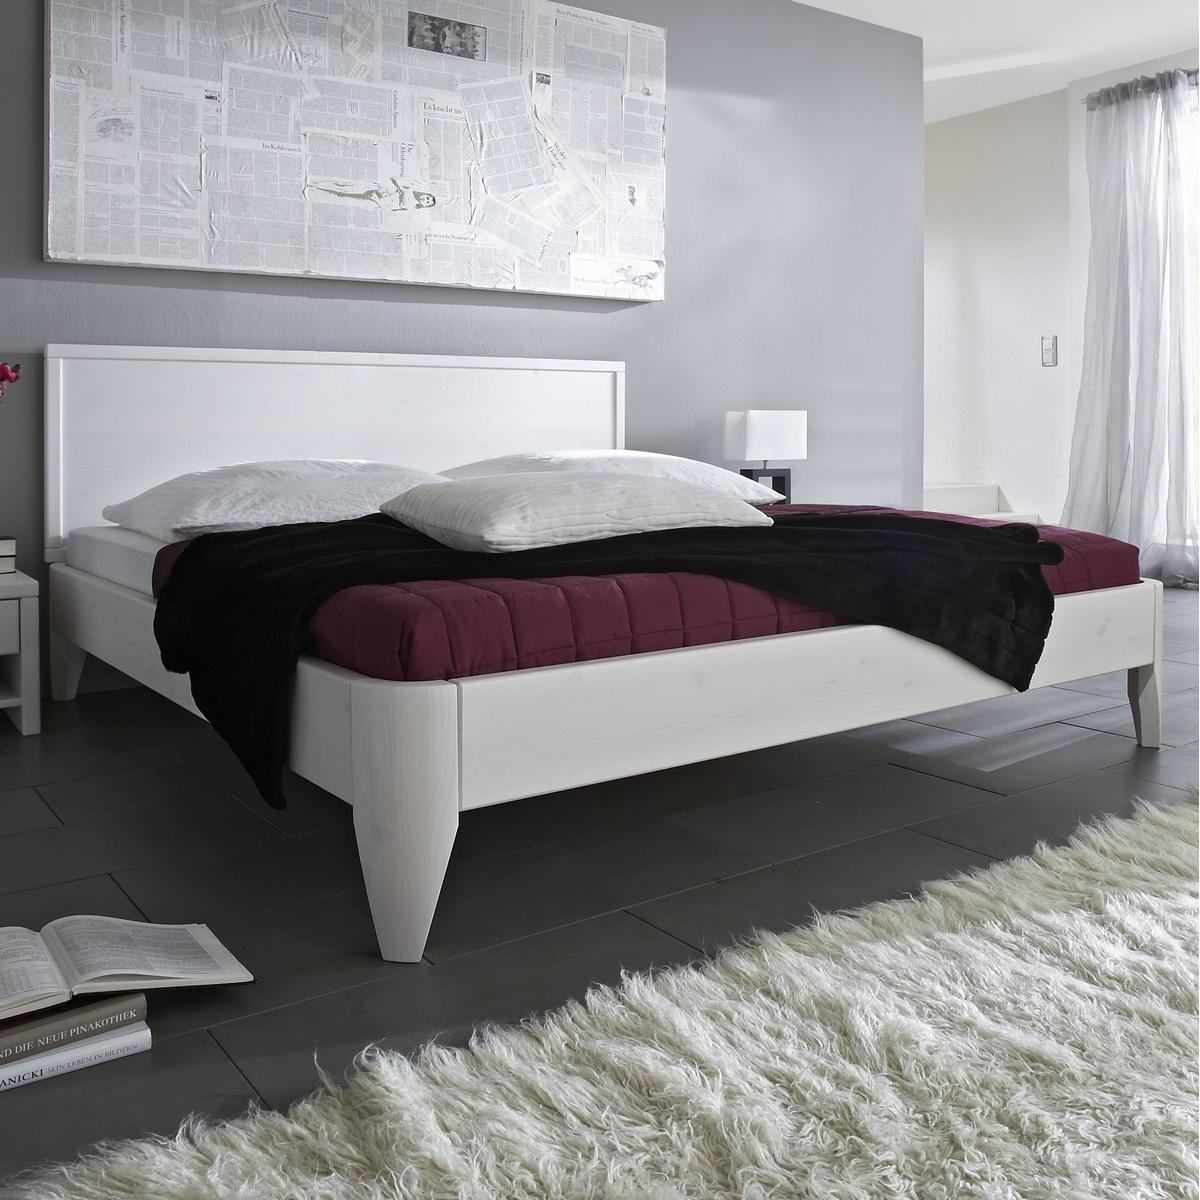 massivholz bett 200x200 easy sleep kiefer massiv wei. Black Bedroom Furniture Sets. Home Design Ideas